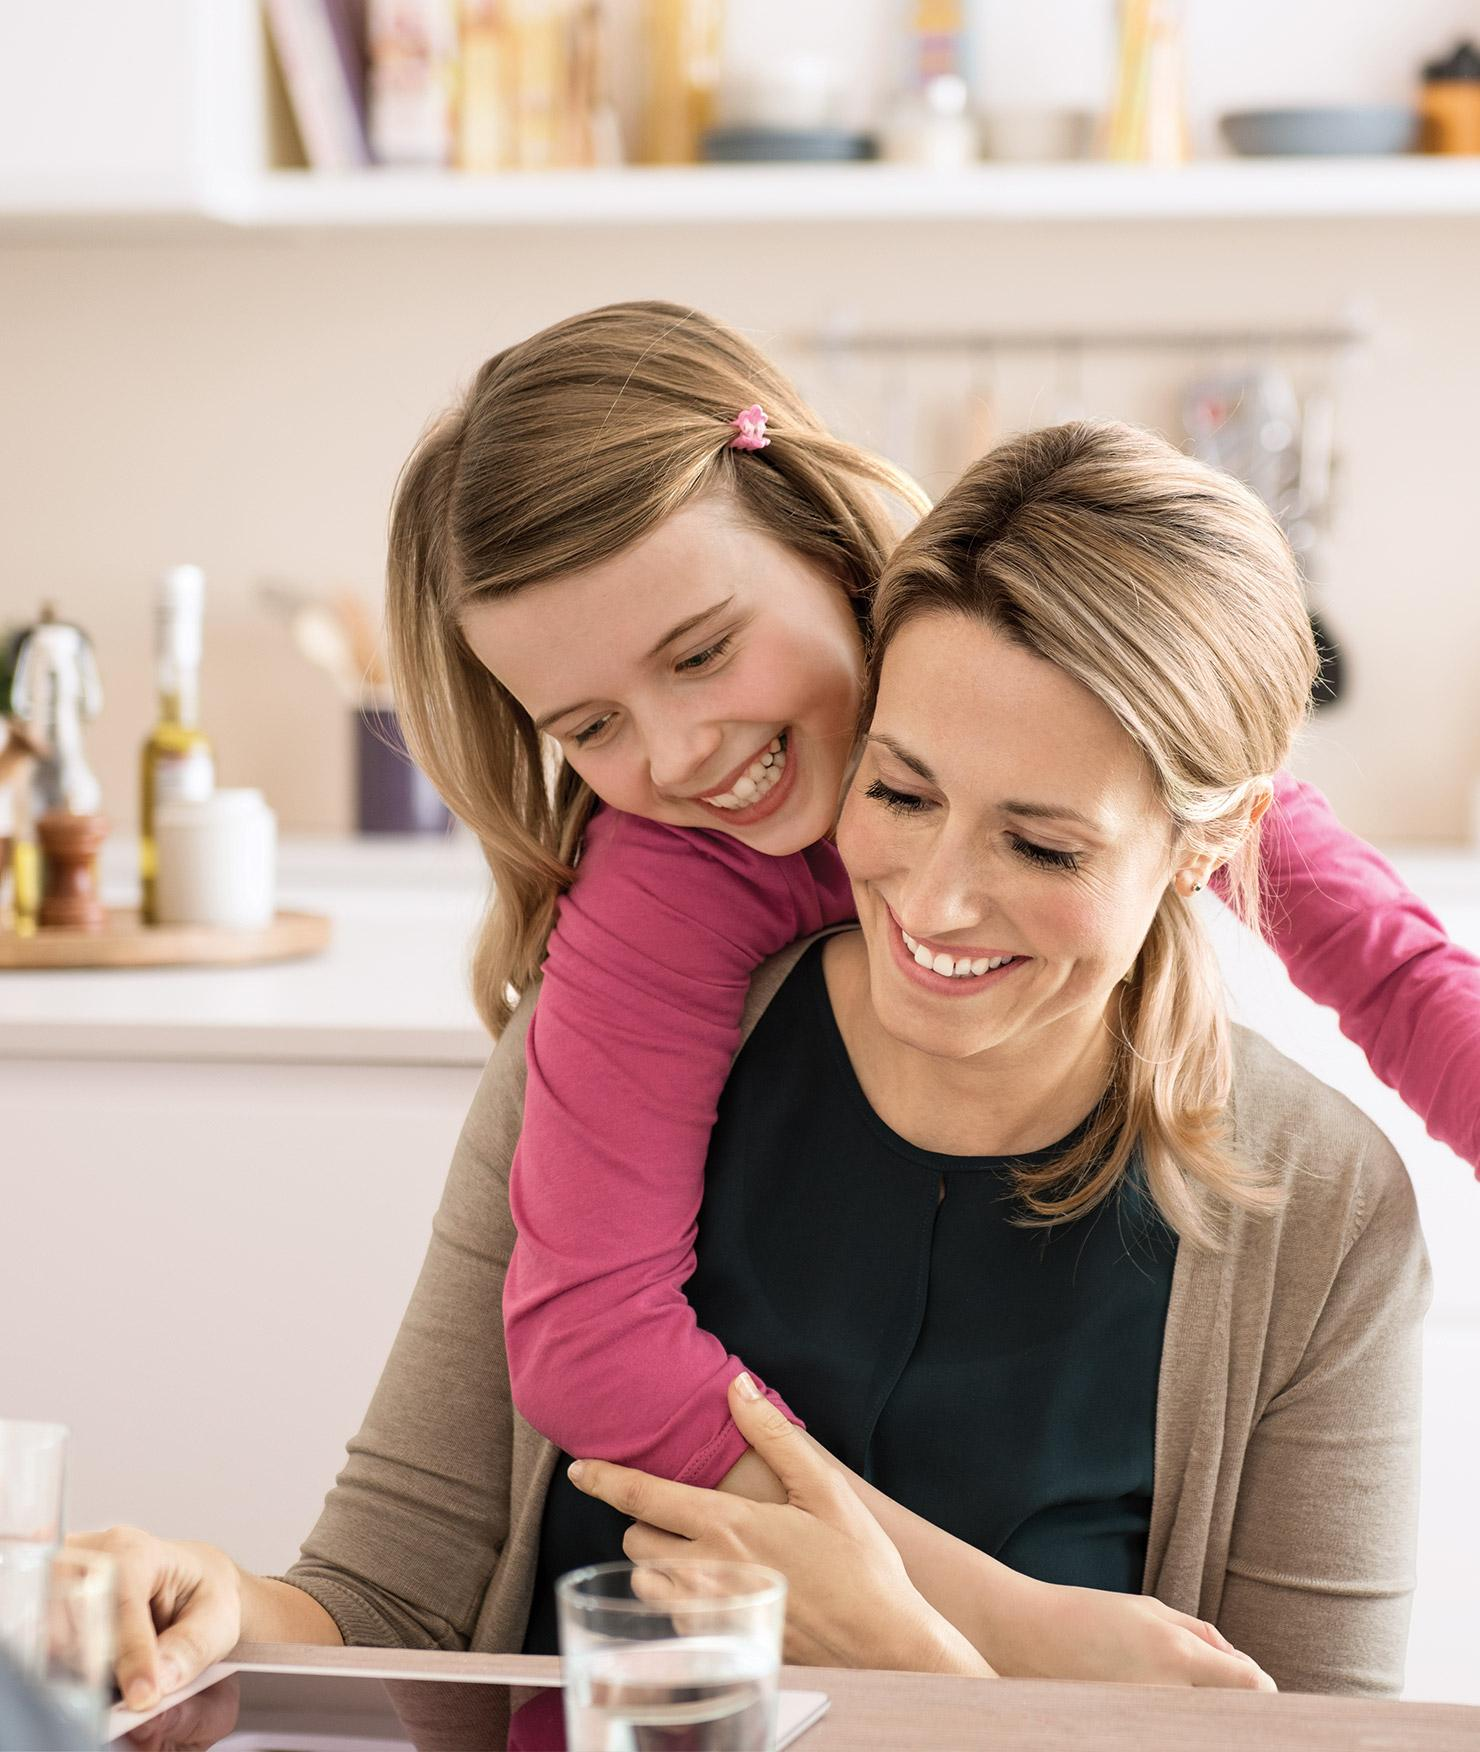 Mother and daughter are happy in a kitchen.